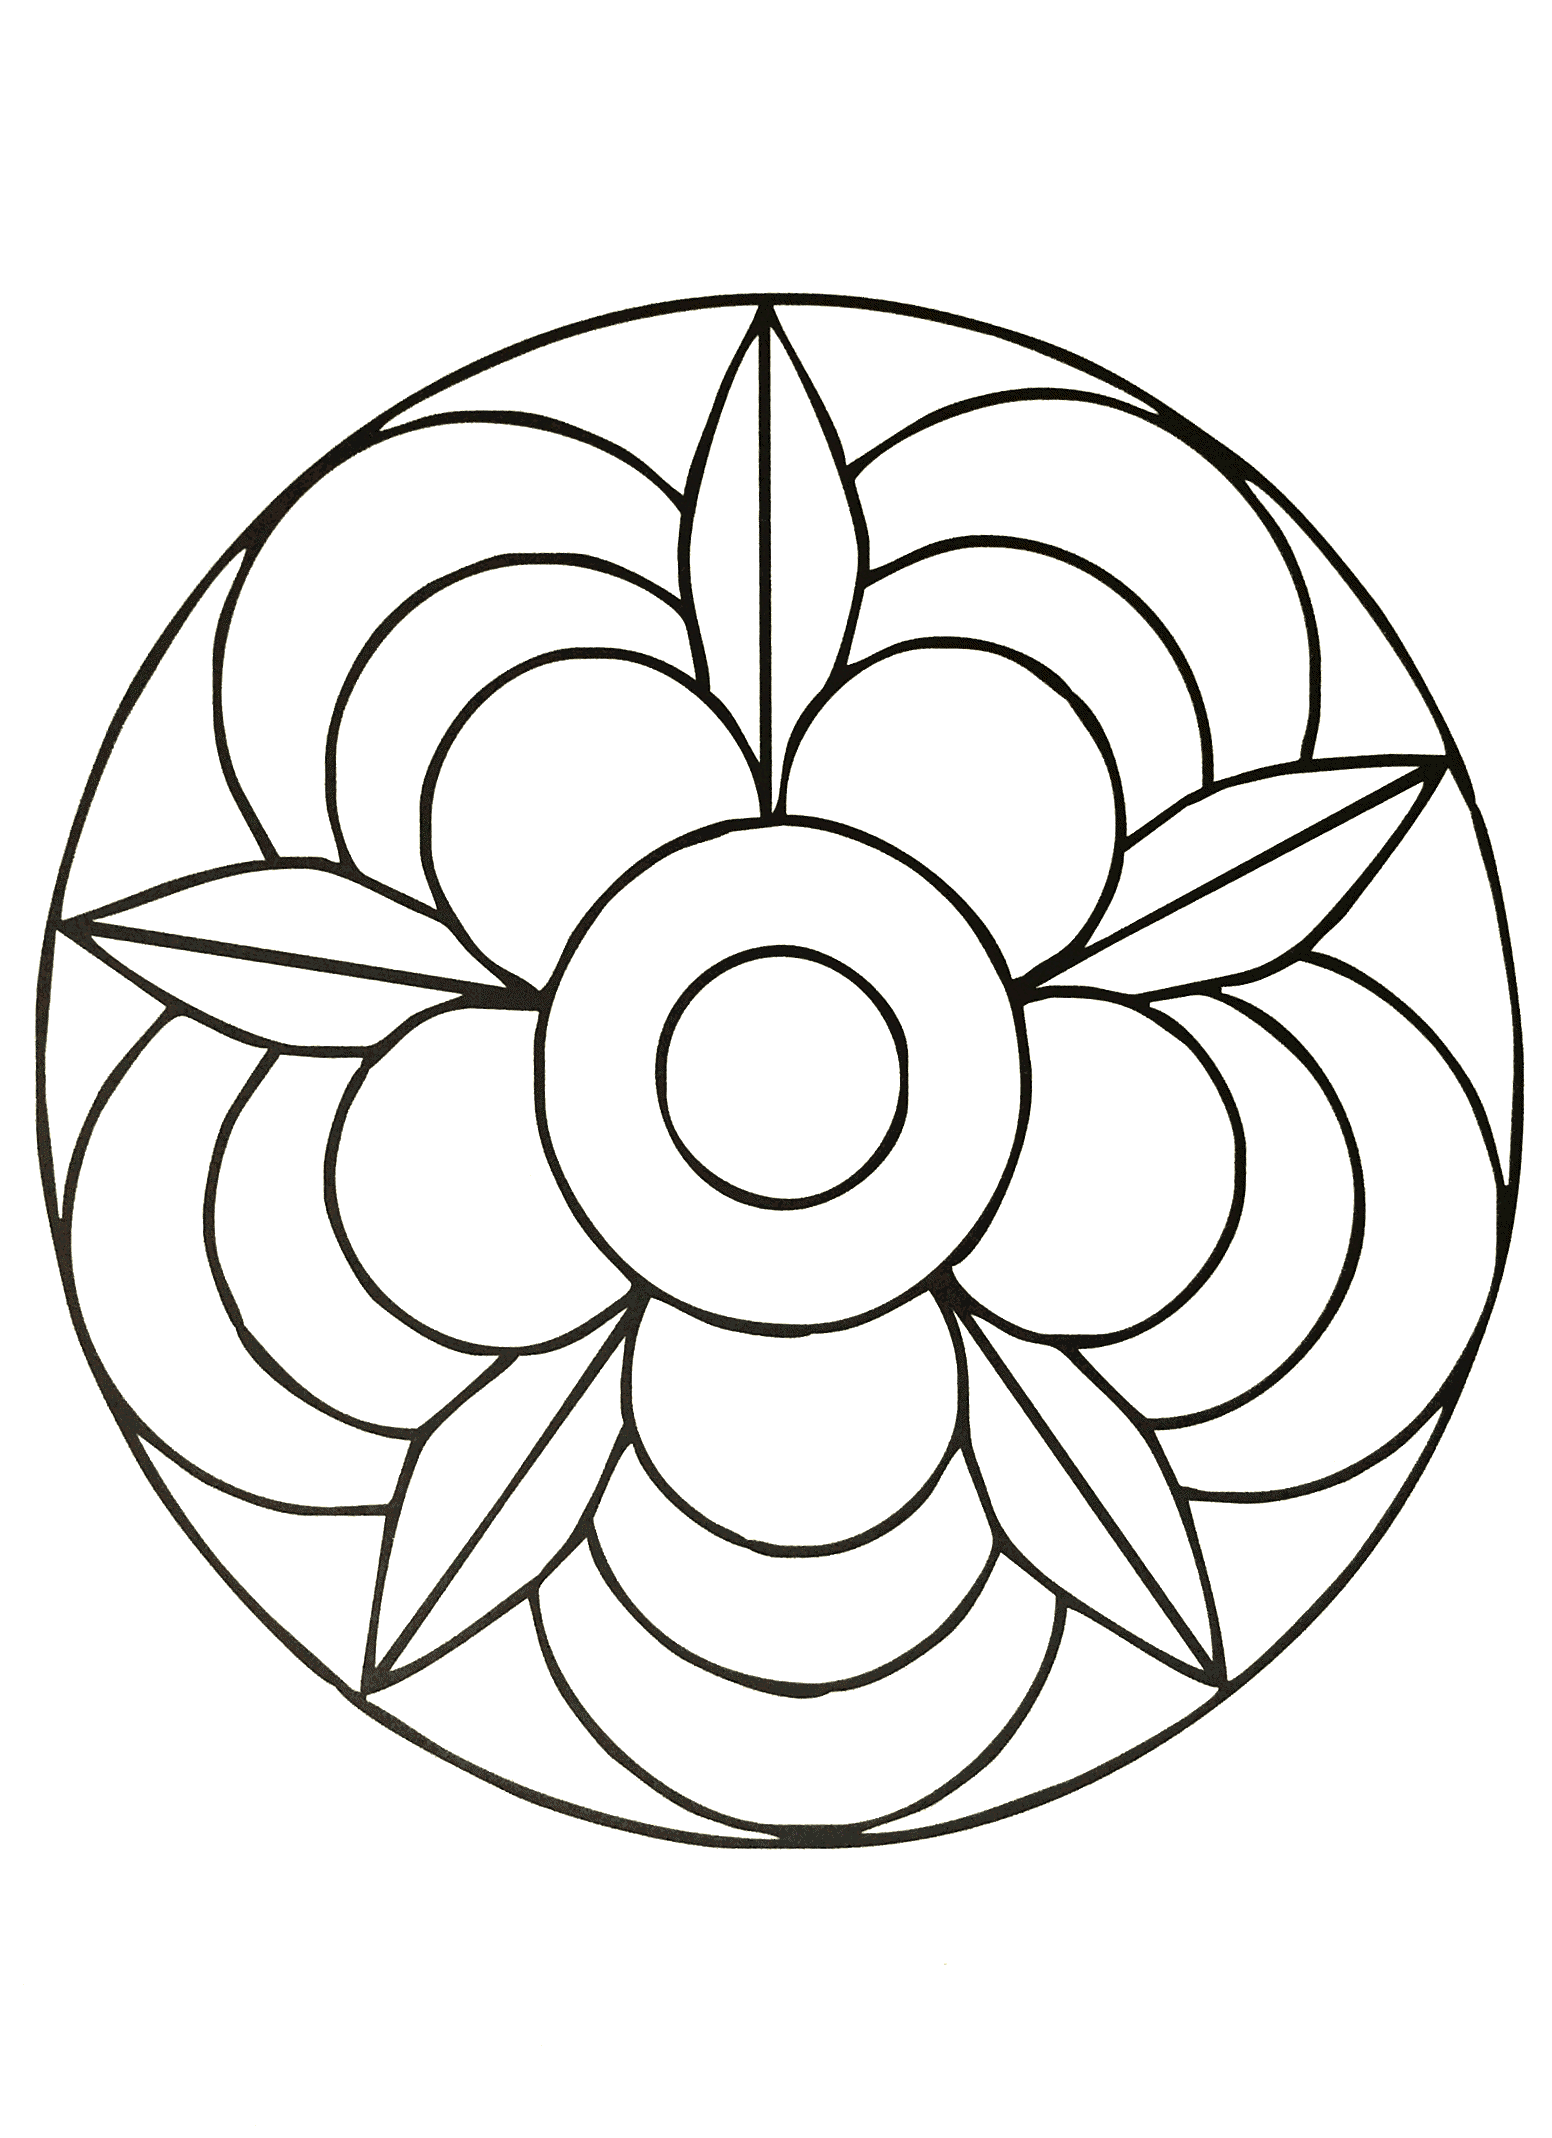 simple mandala 40 mandalas coloring pages for kids to print u0026 color